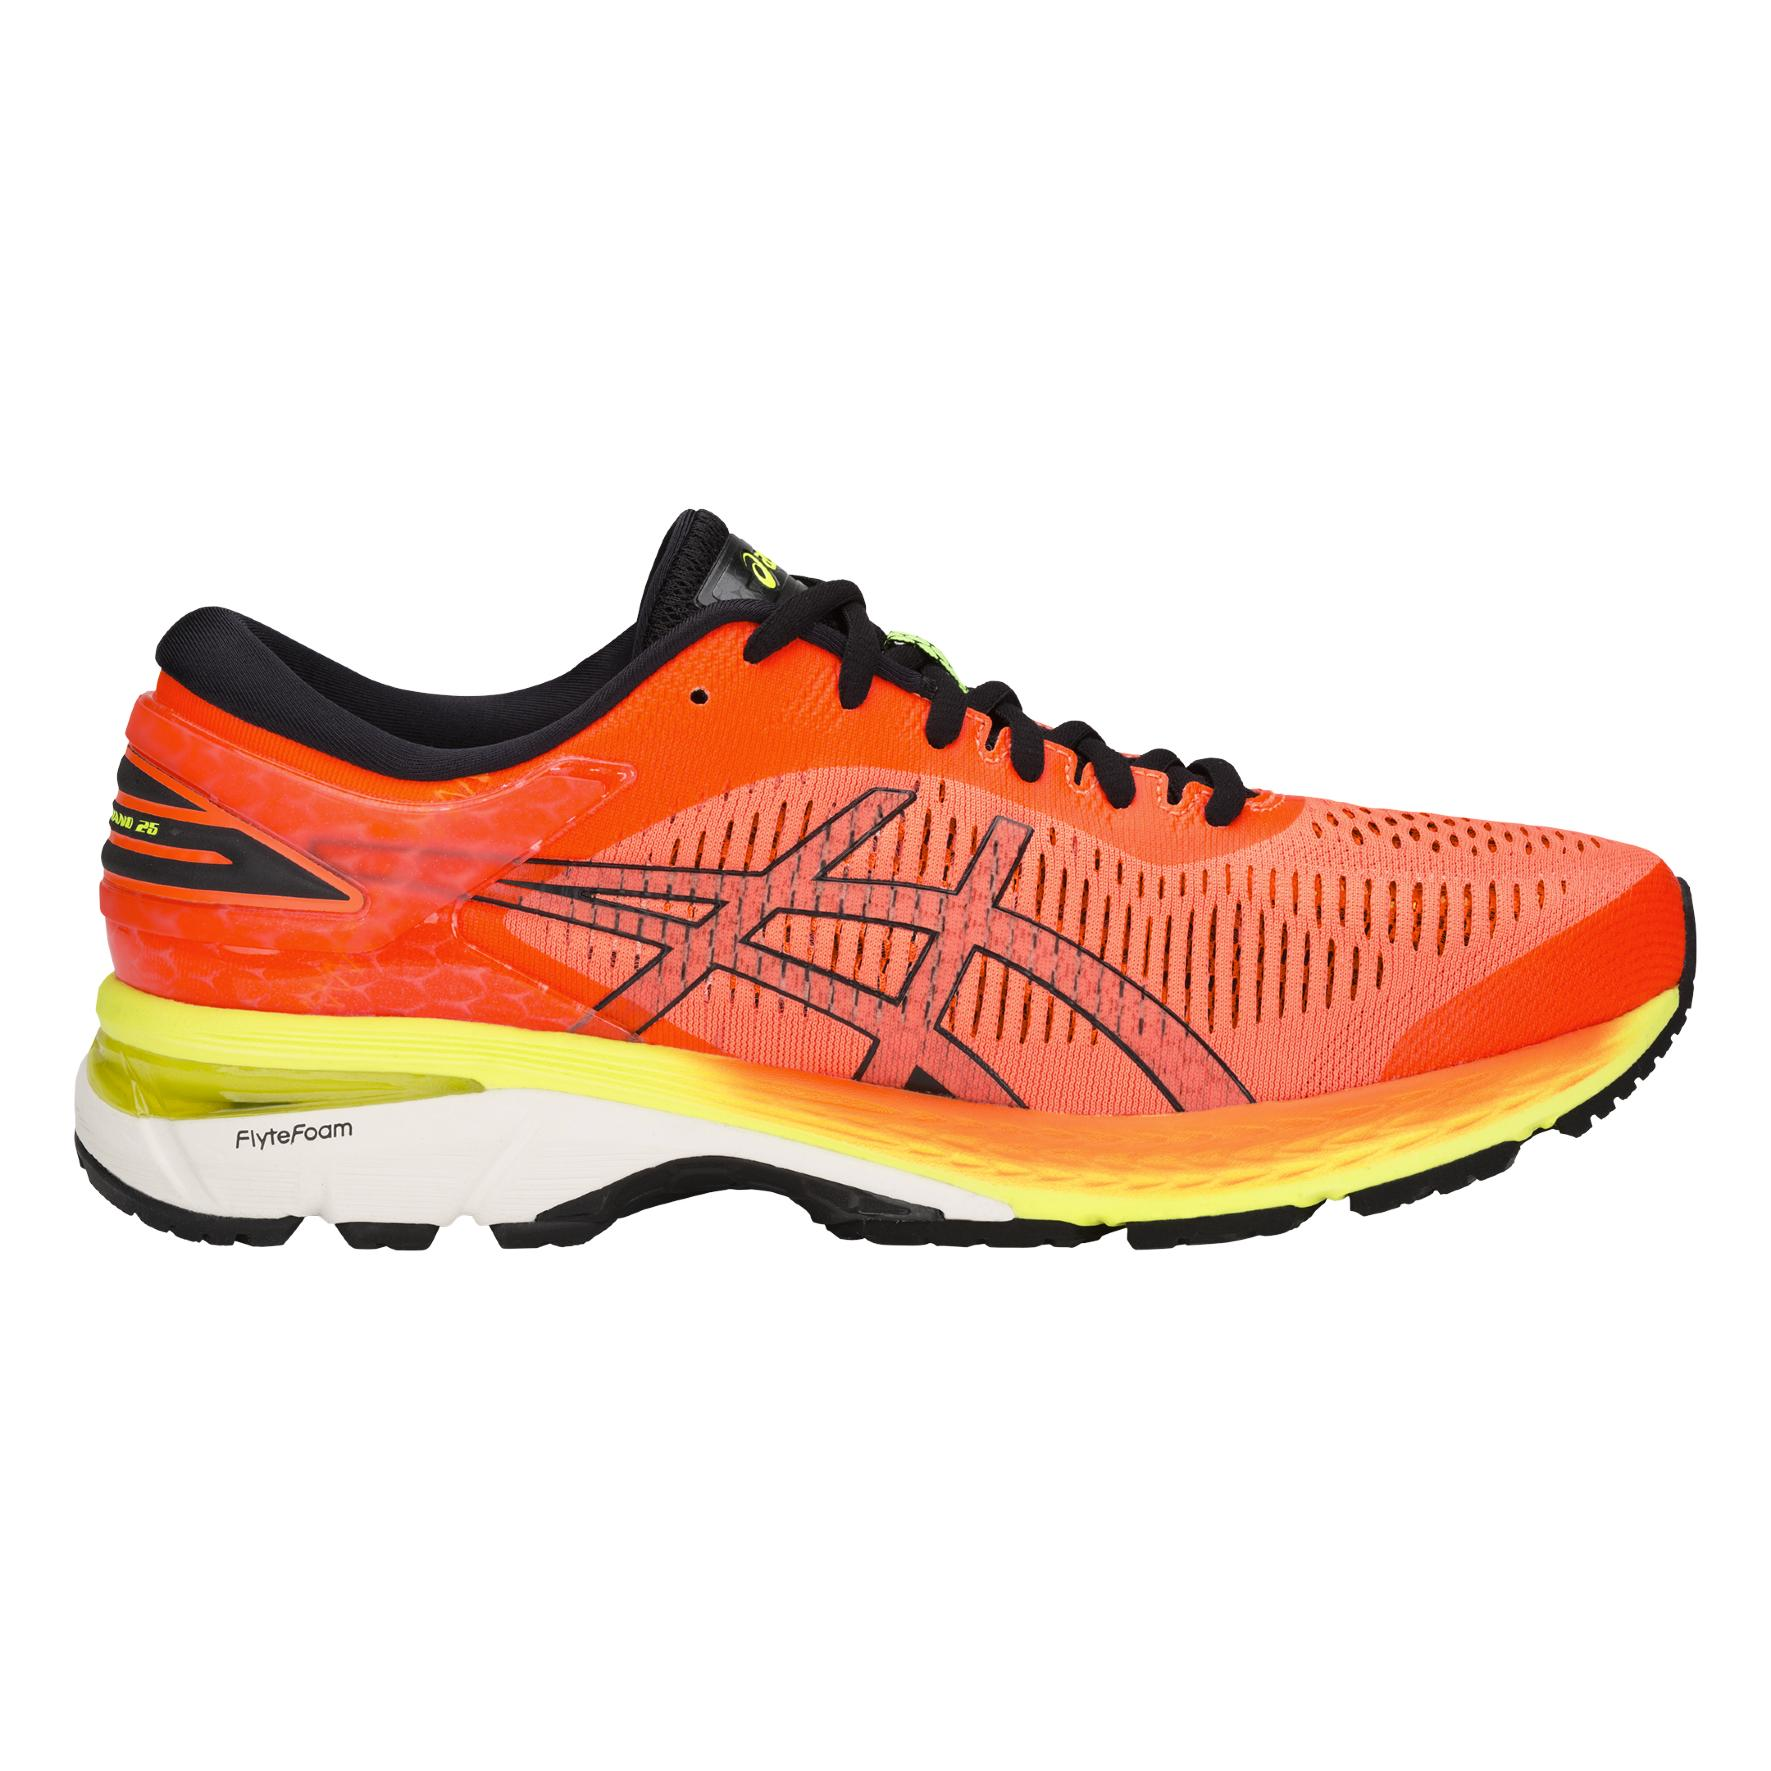 de075f5f30dd1 ... new style asics shoes gel kayano 25 bd923 18873